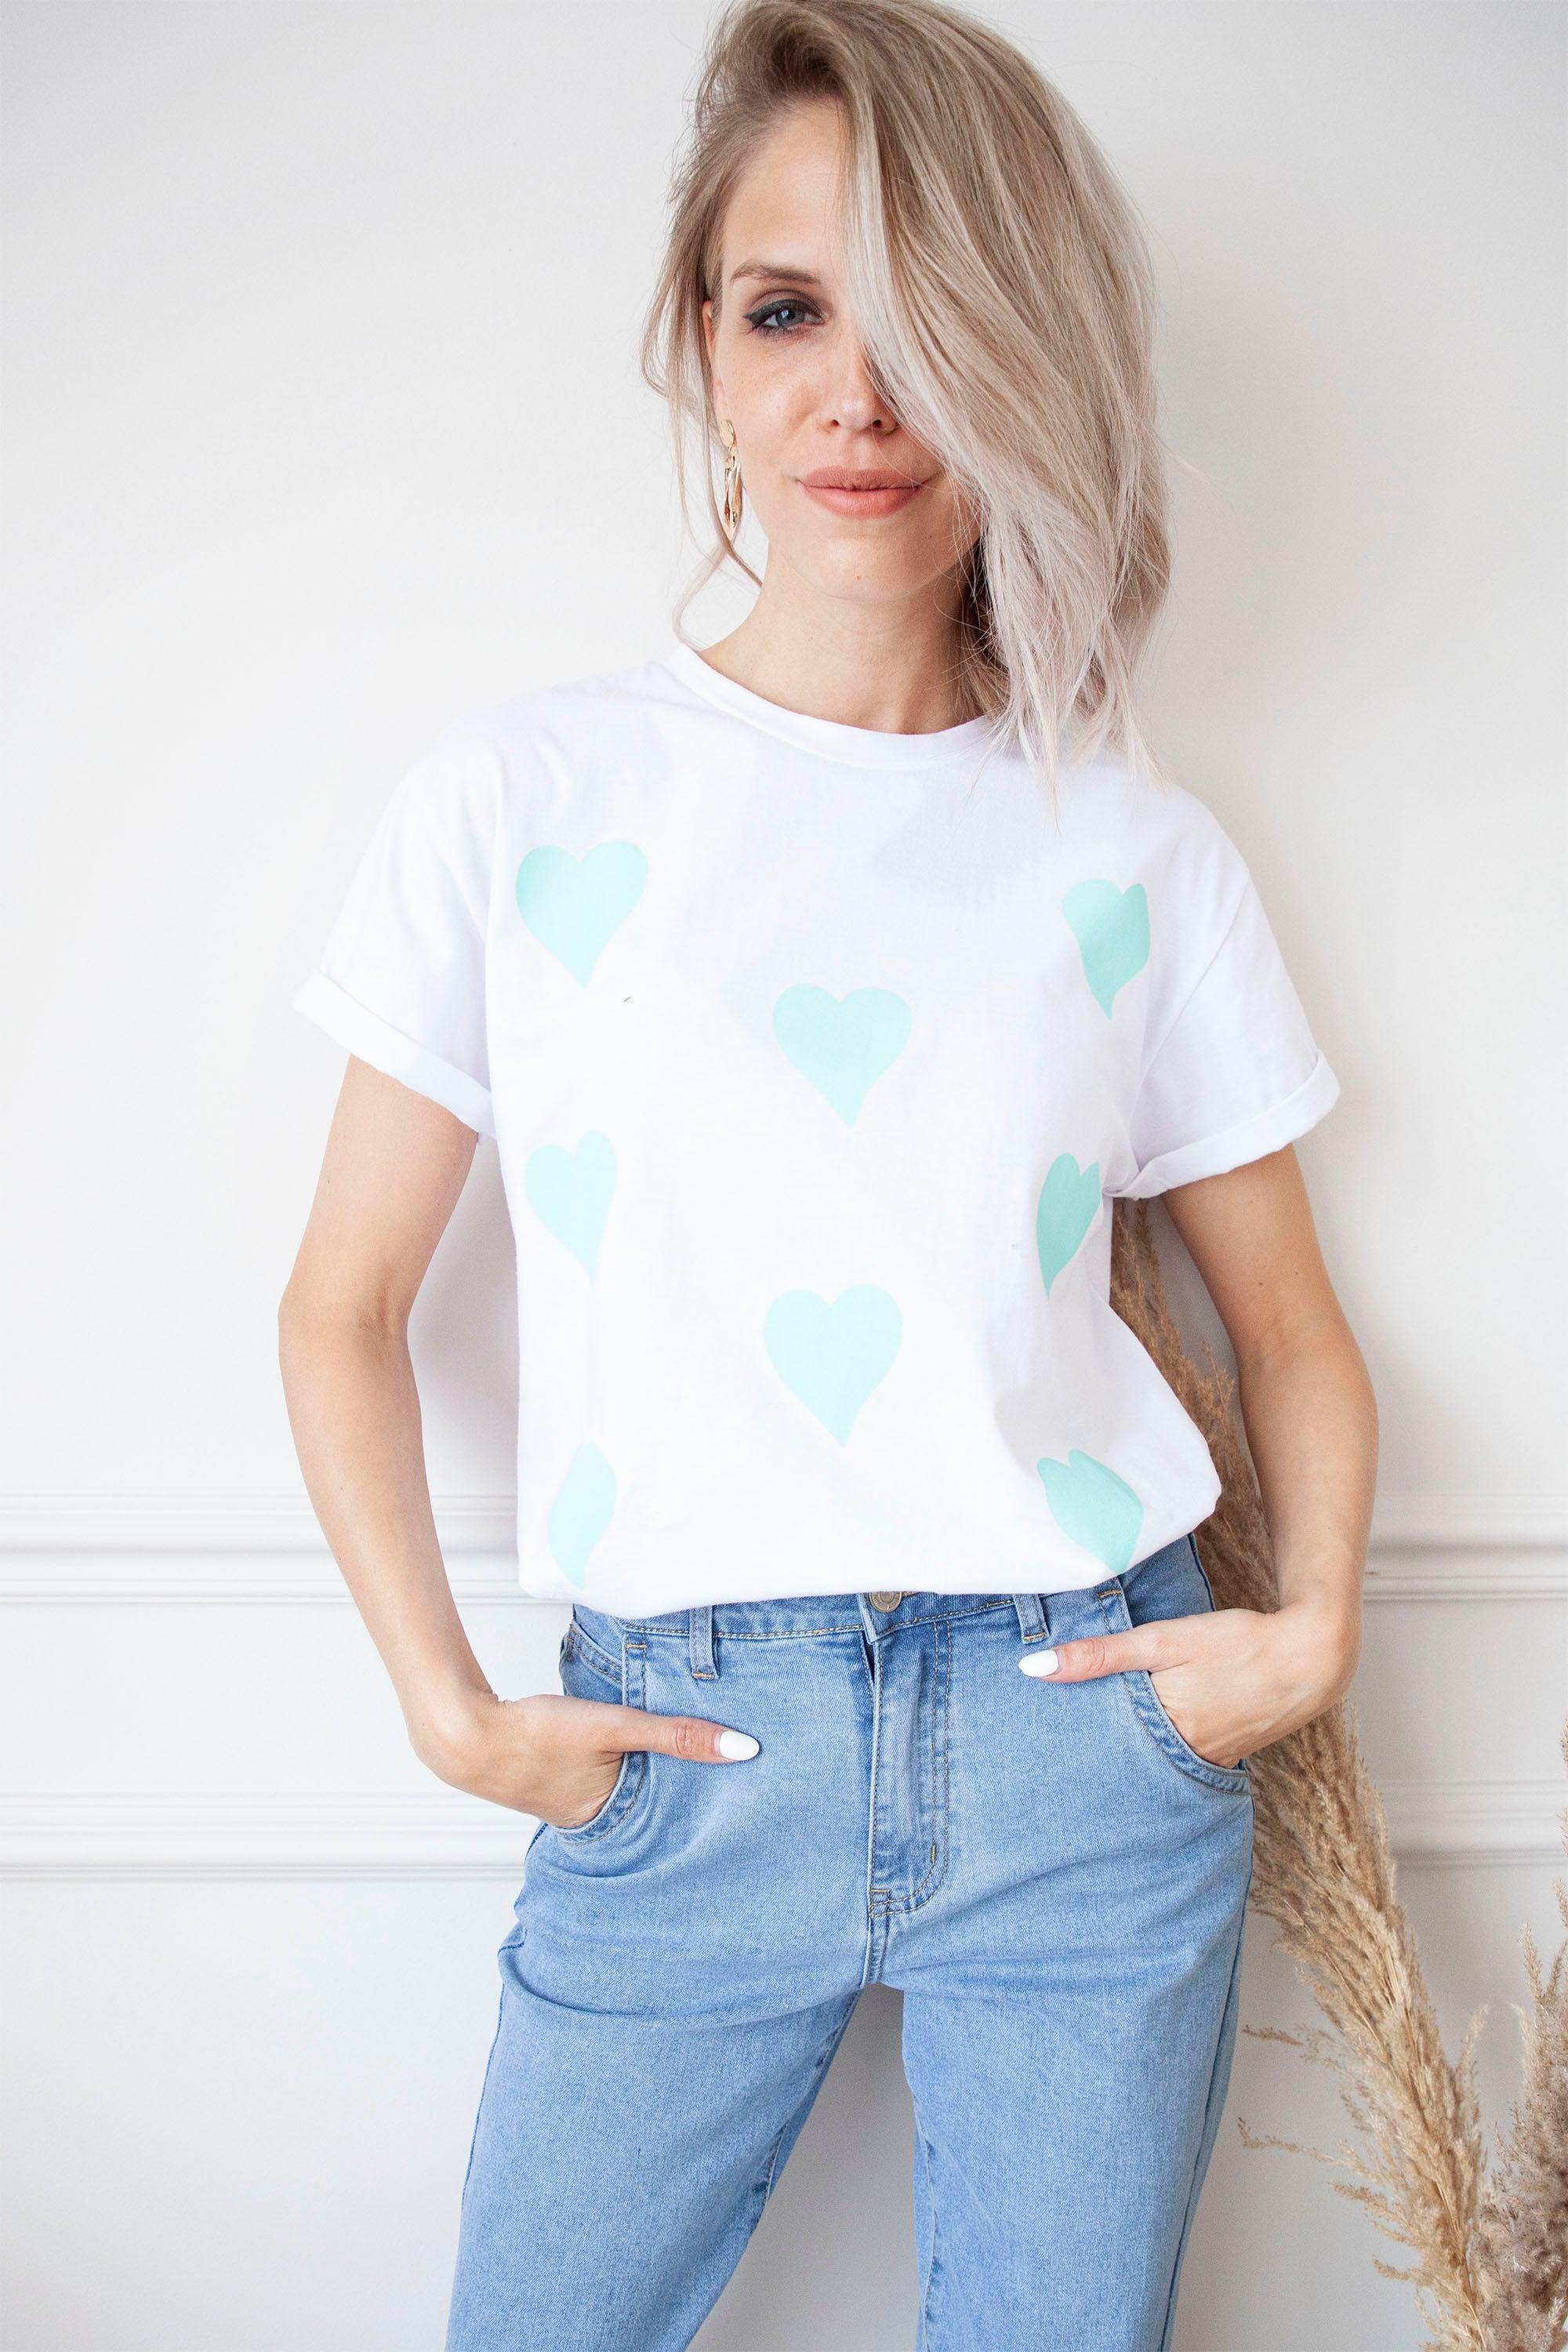 Spread The Love LILY in White/Mint Green- T-shirt